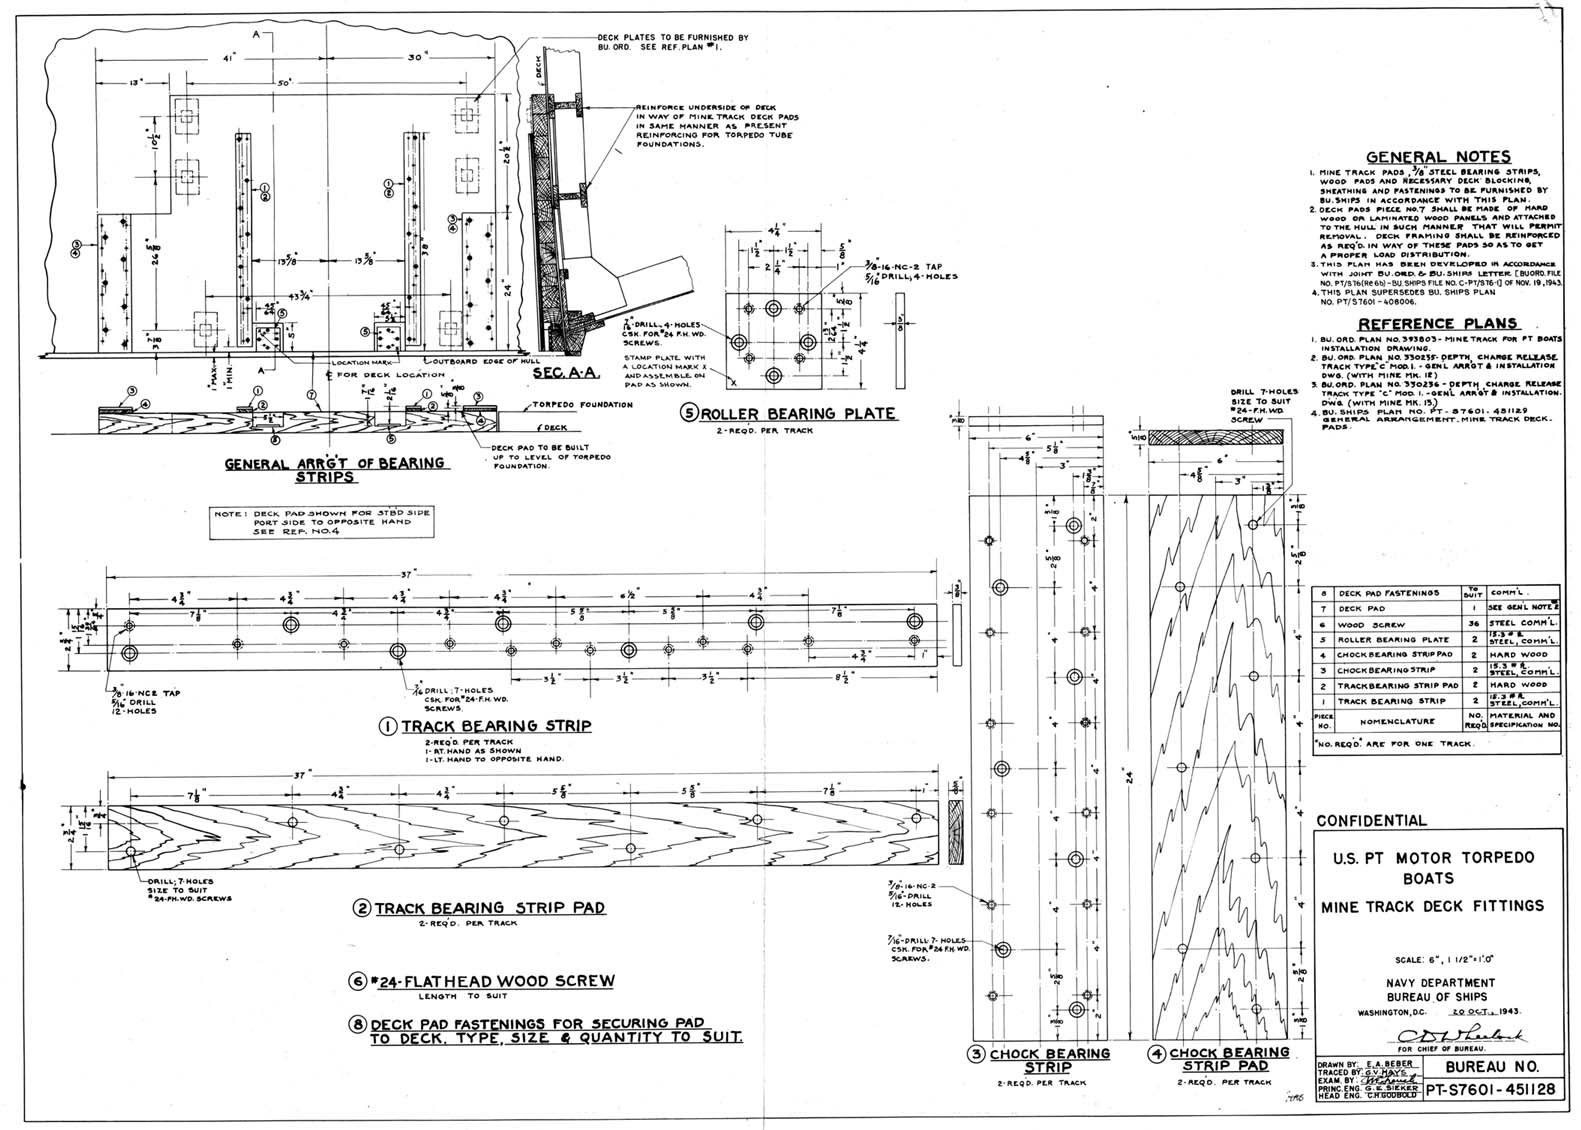 Researcherlarge 1943 Minelaying For Pt Boats Memo Boat Station Wiring Diagram Two S7601 451128 Us Motor Torpedo Mine Track Deck Fittings